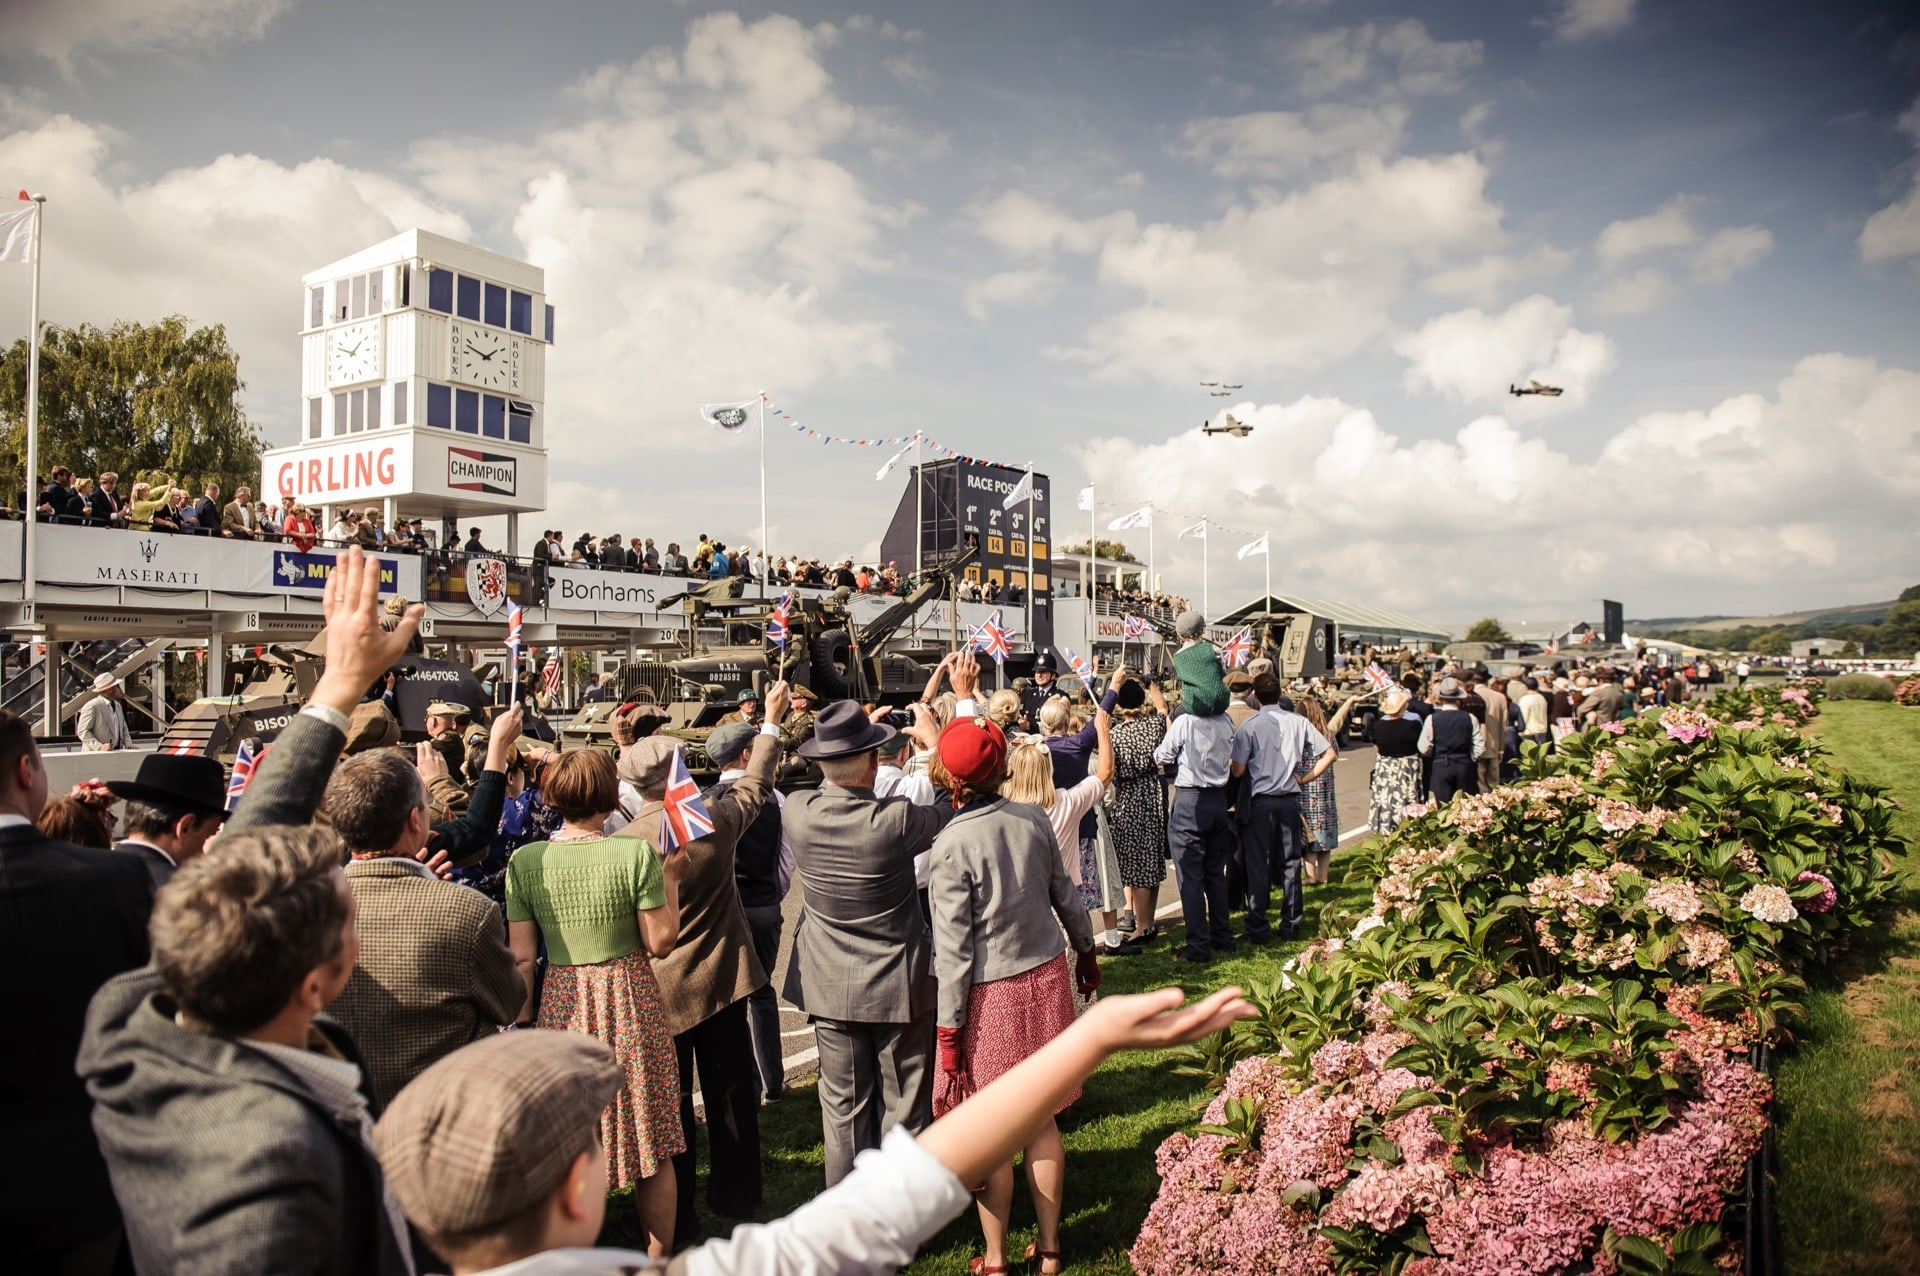 Spectators clad in the fashion of bygone eras at the Rolls-Royce Goodwood Revival experience.